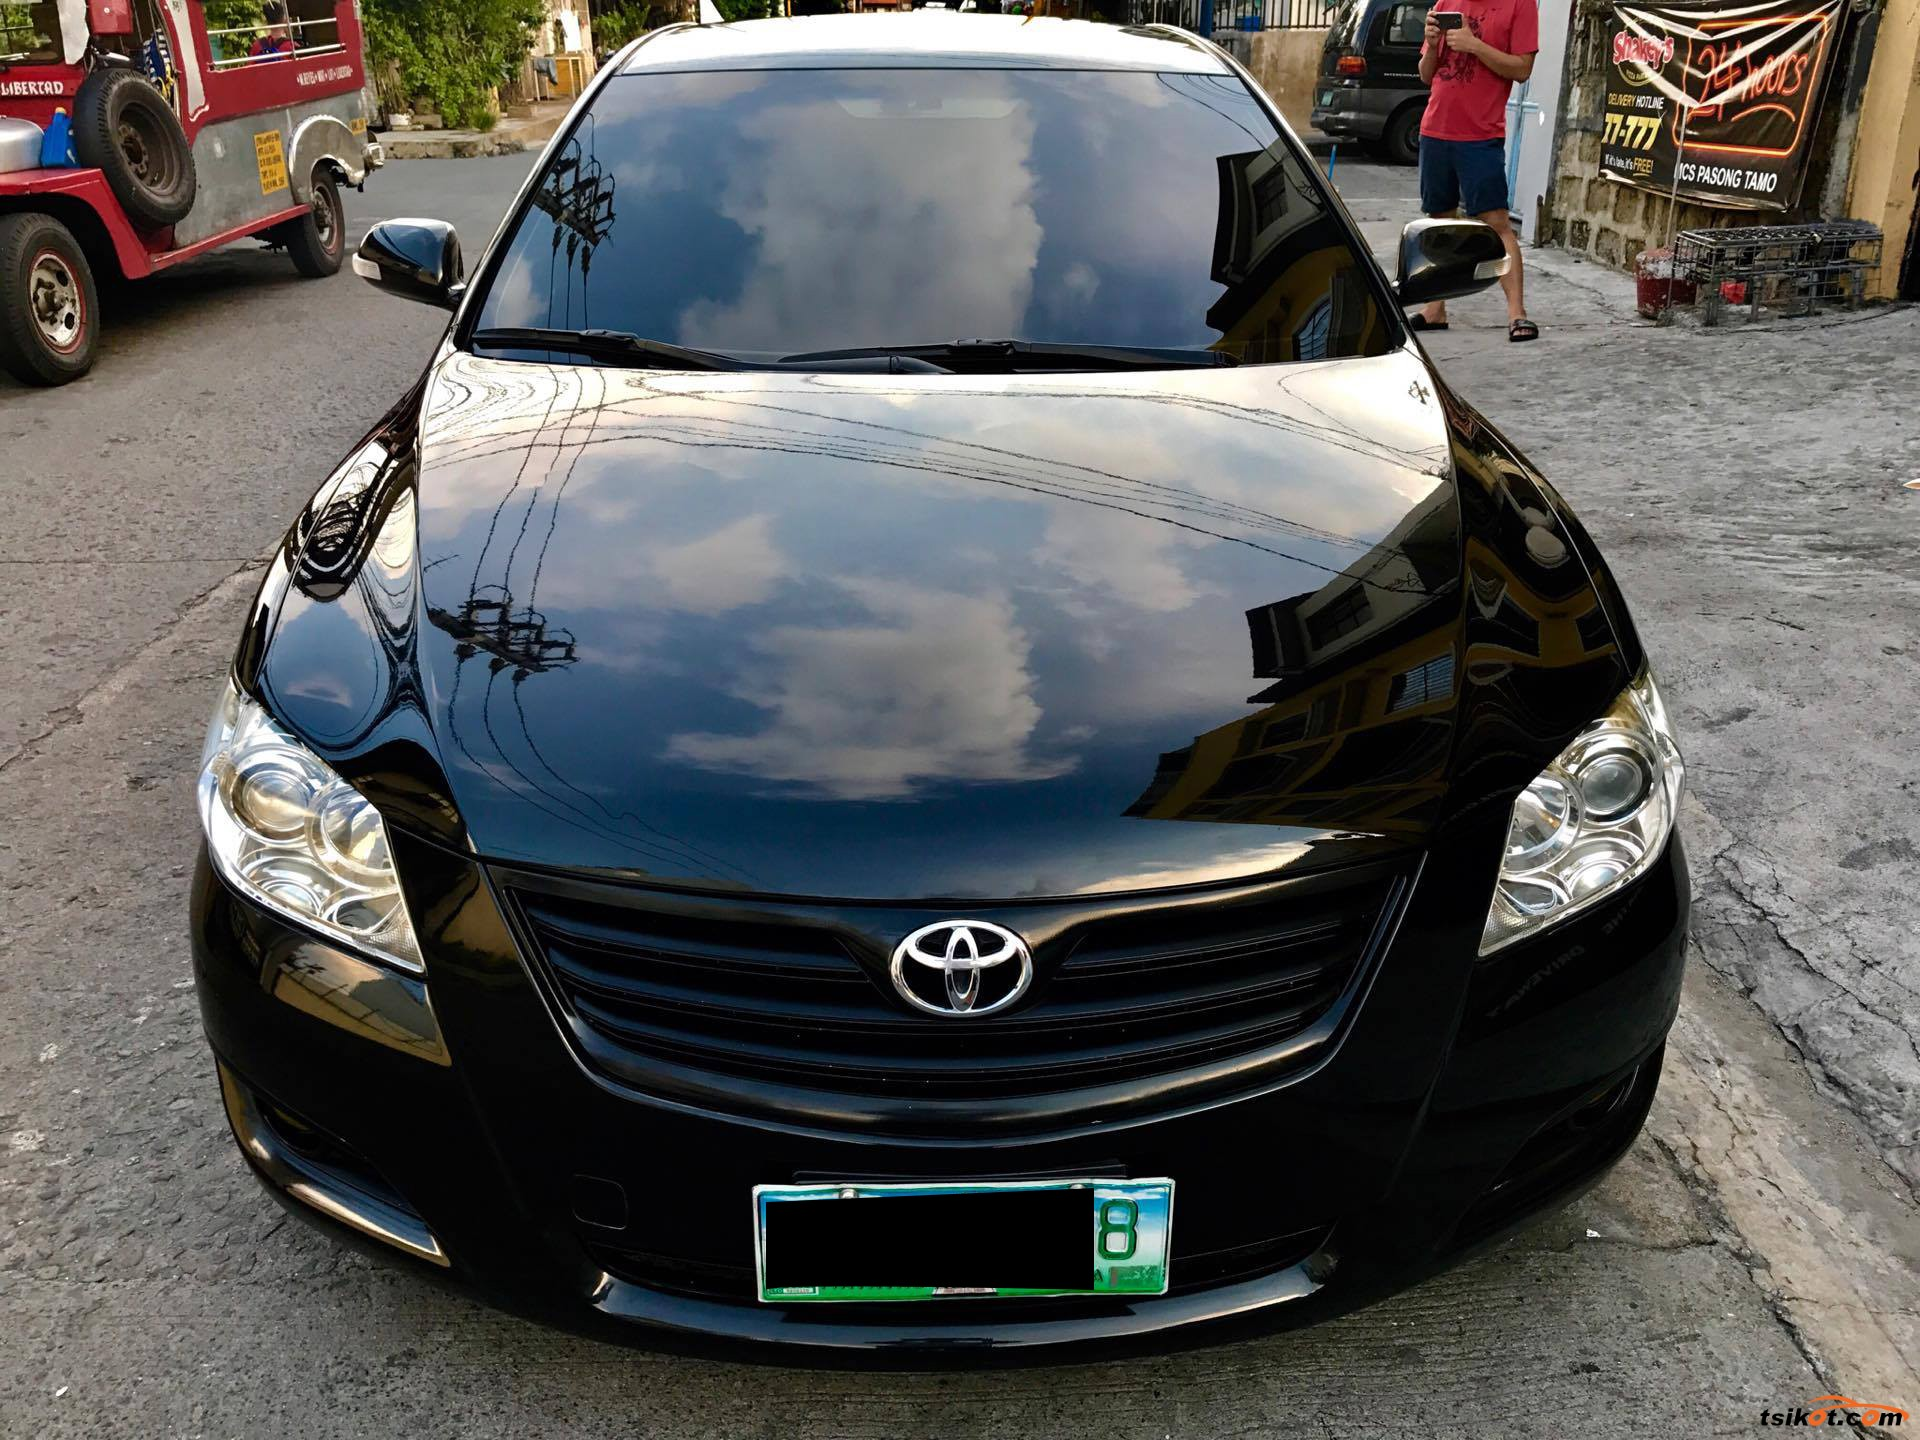 brand new toyota camry for sale in ghana audio grand avanza 2007 car metro manila